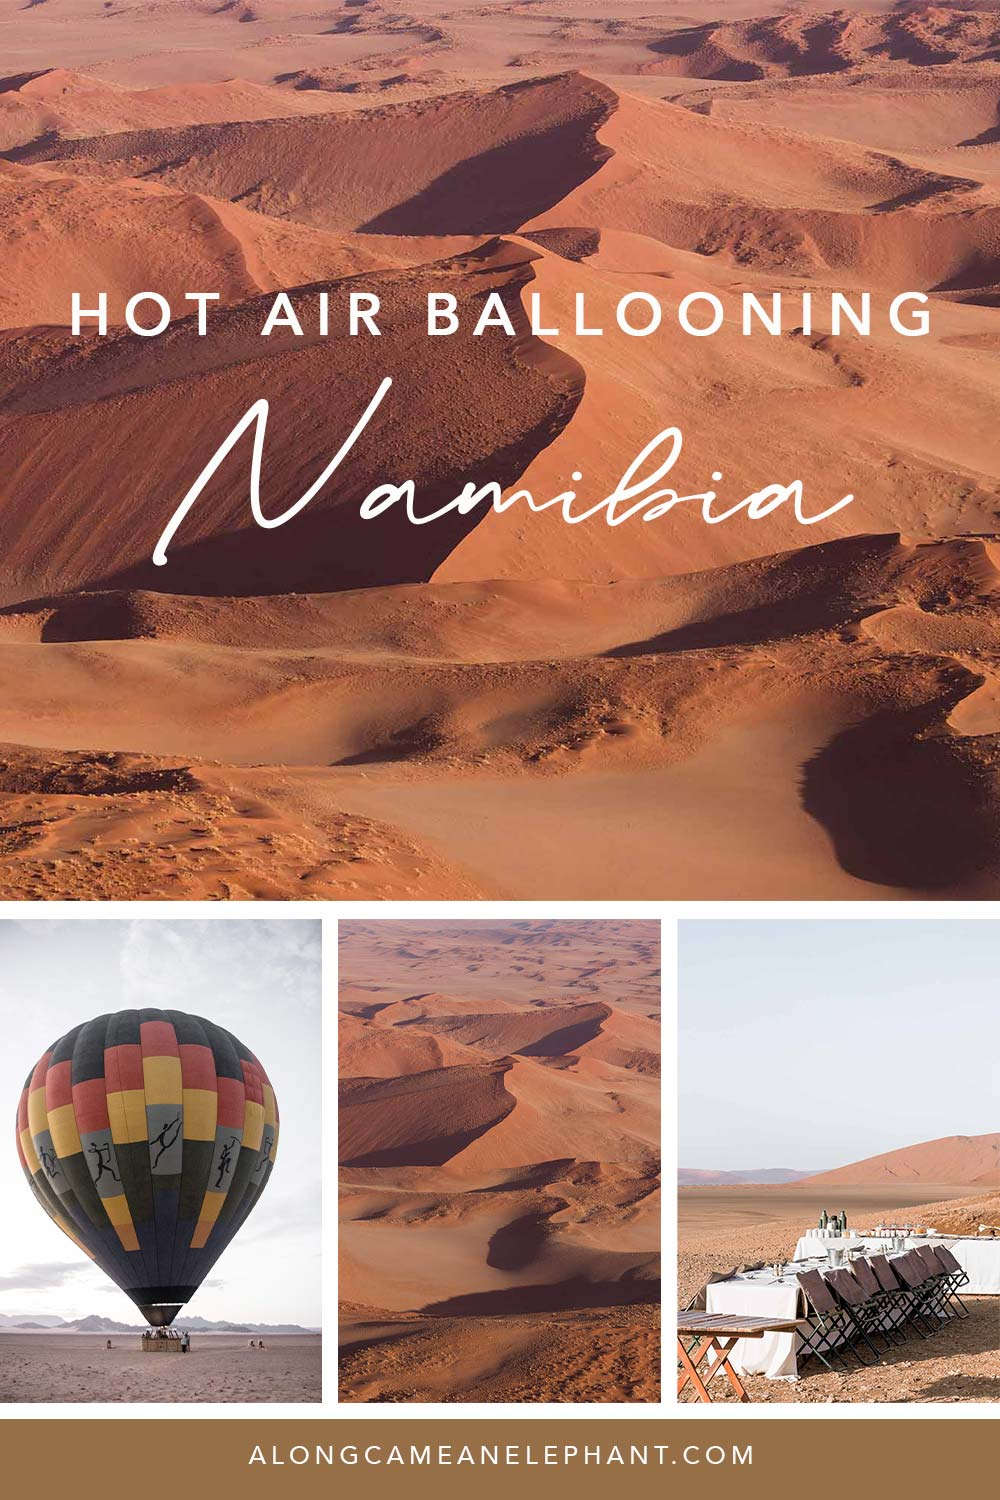 Enjoy Namibia's most famous attraction -Sossusvlei- from above during a hot air balloon ride. One of our most romantic experiences and best things to do in Namibia, the land of rusty sand dunes!   An incredible day trip floating over beautiful landscapes and enjoying a champagne breakfast once you touch ground in the Namib desert! #namibia #travel #desertexperience #romantictrips #honeymoonnamibia